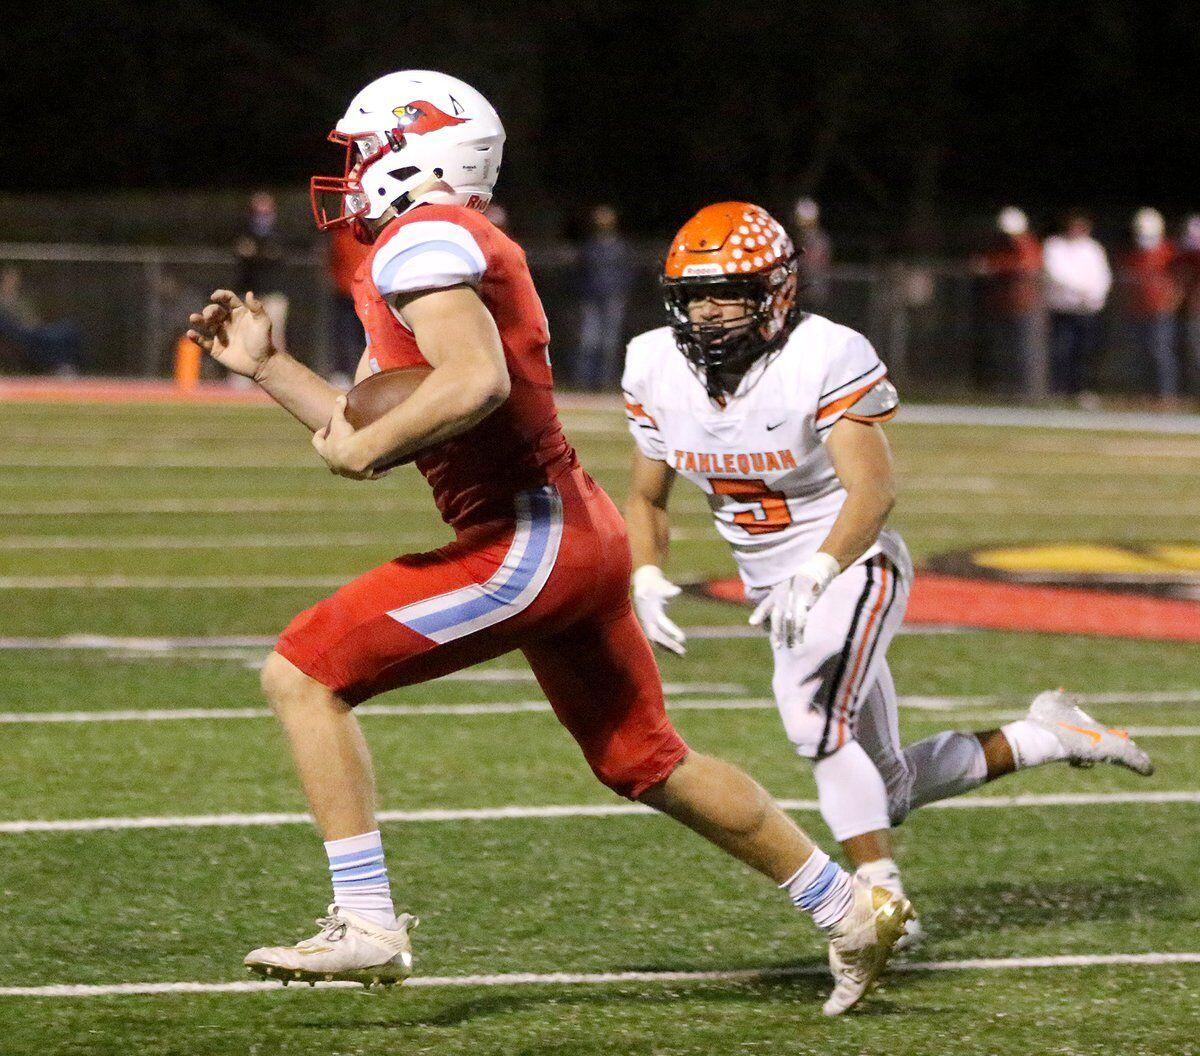 IN REVERSE: Tigers fall to No. 2 Collinsville in regular season finale